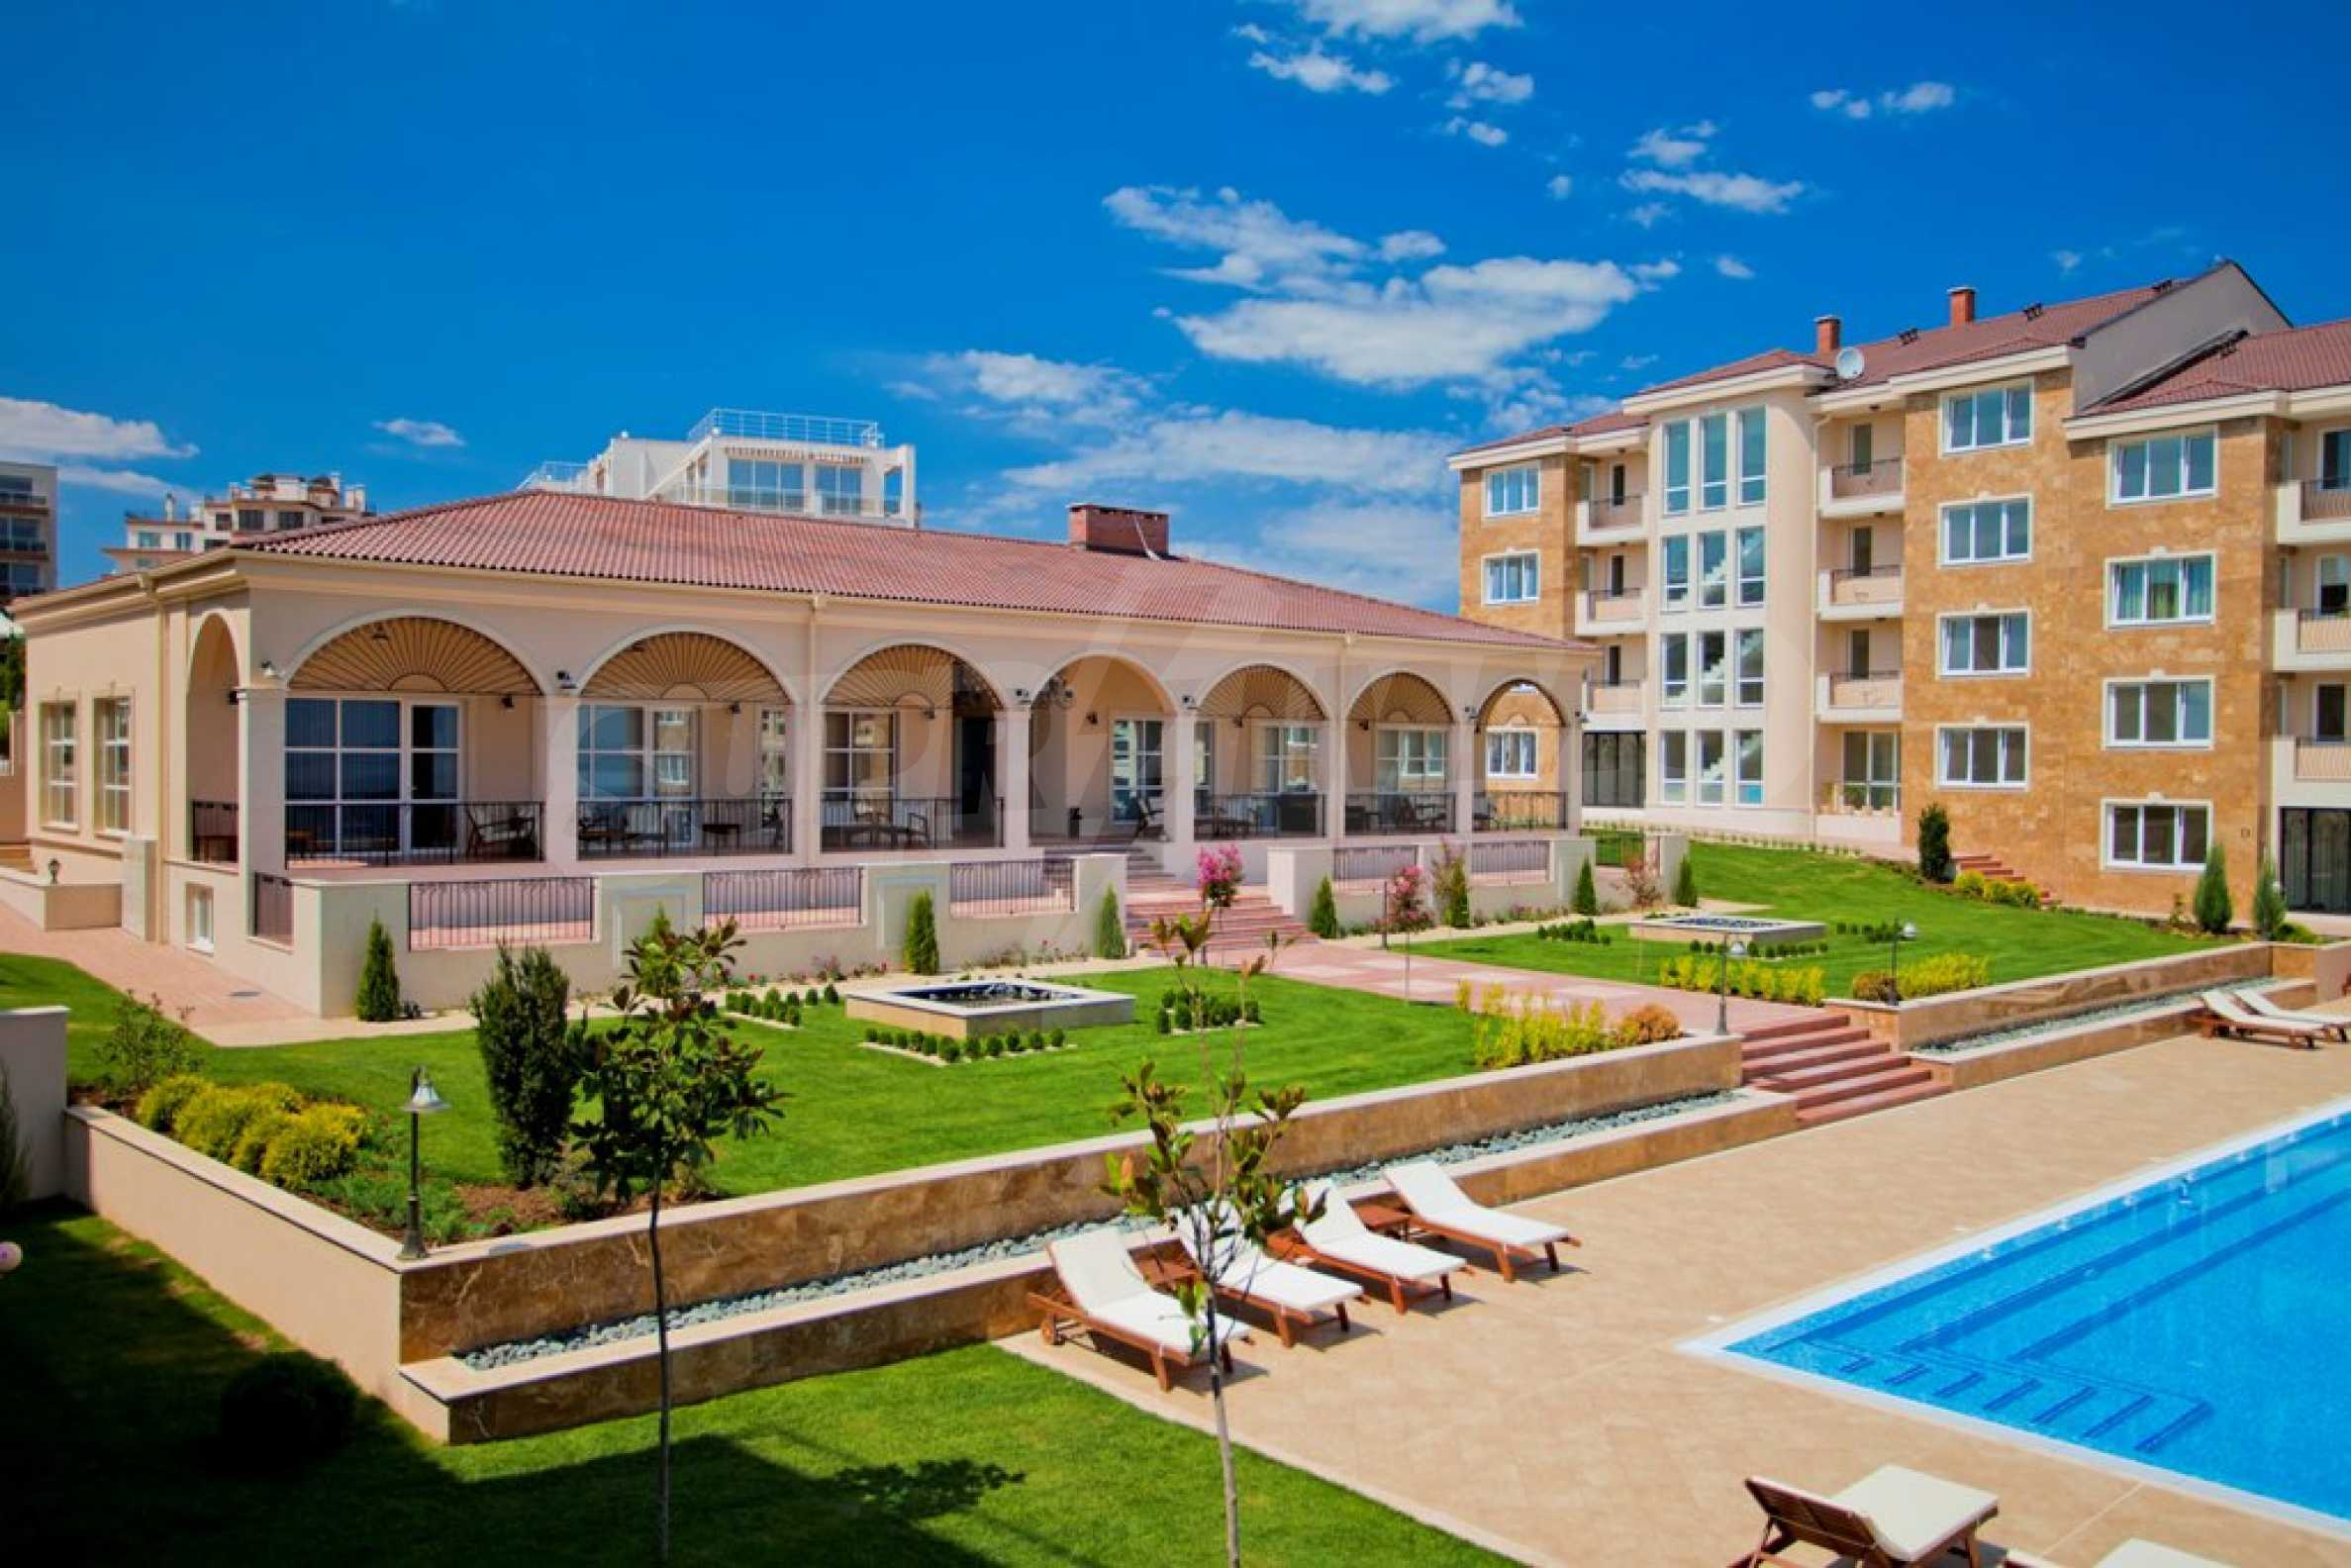 New apartment complex Atia resort in Chernomorets 4